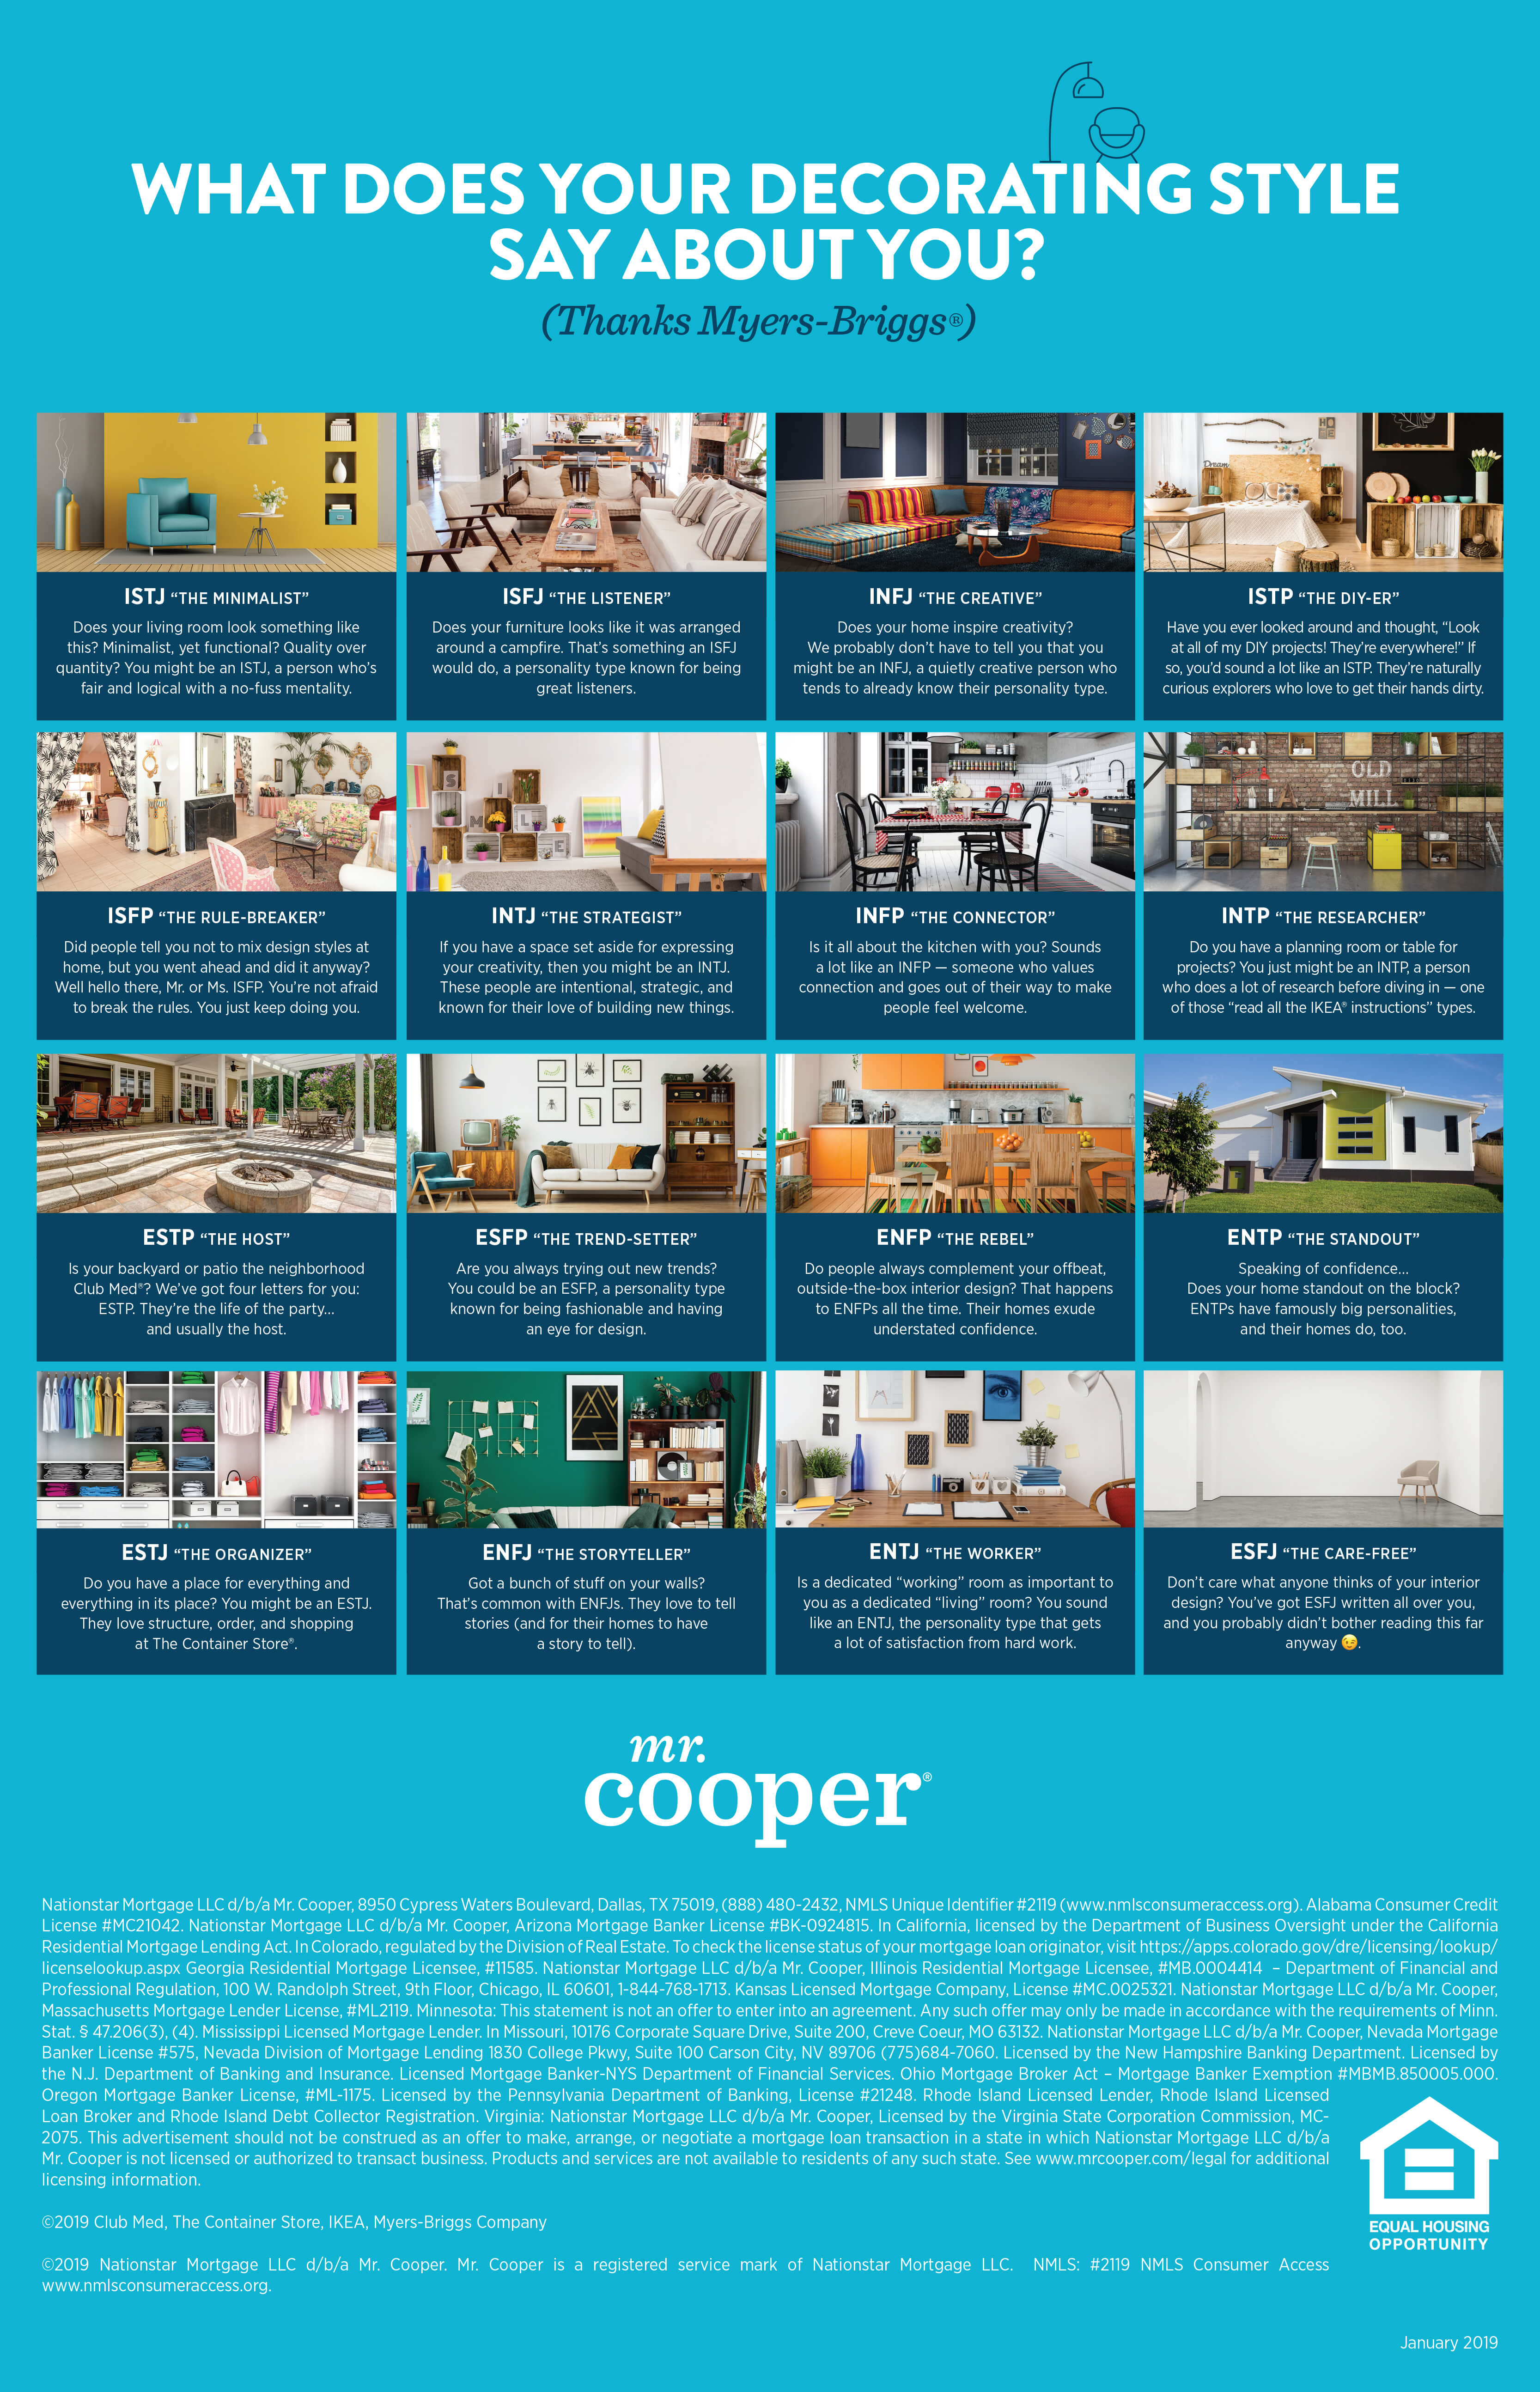 What Does Your Decorating Style Say About You?